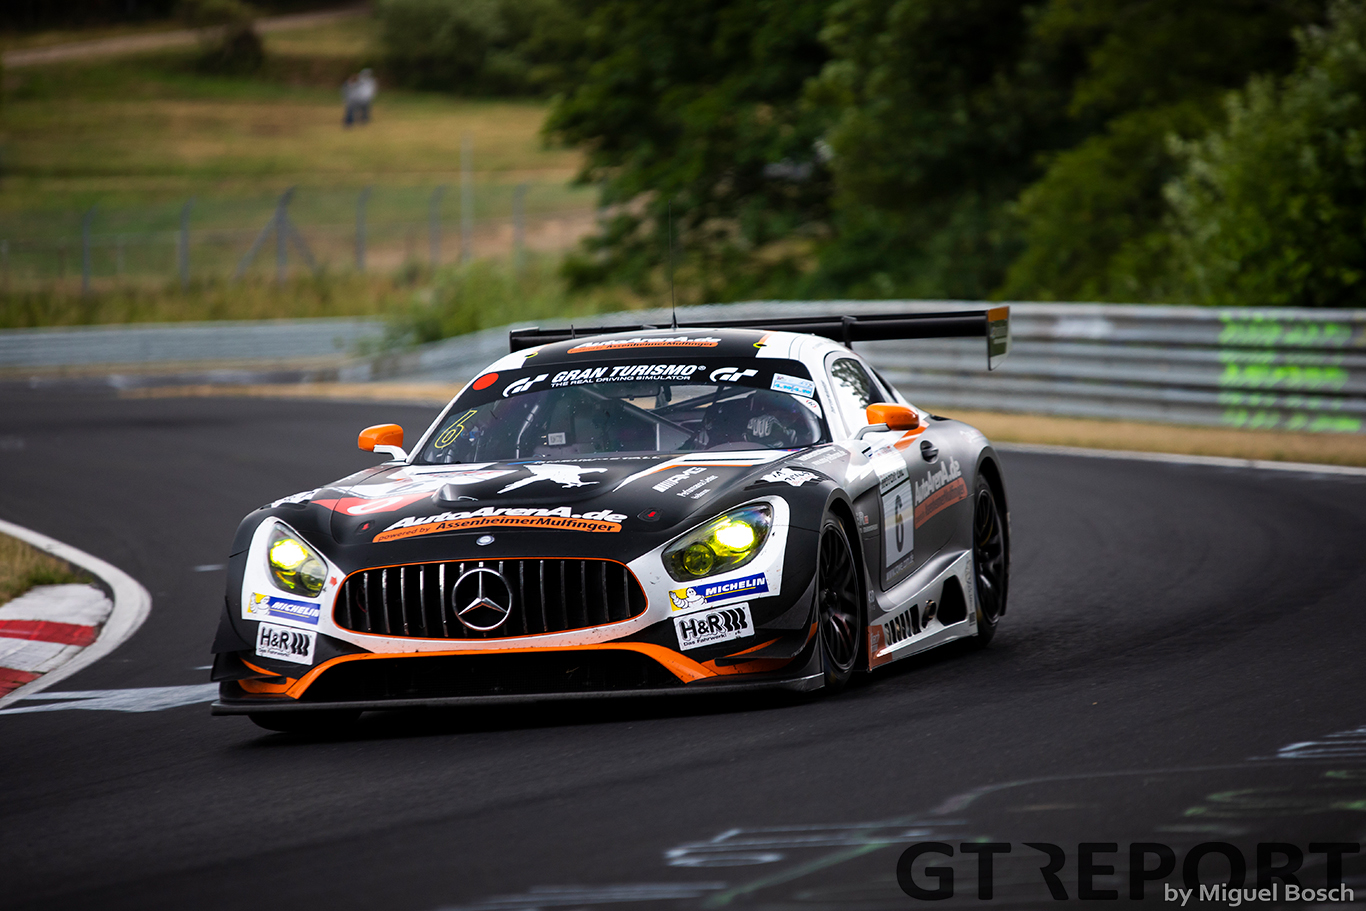 VLN4: Three-way battle ends with Black Falcon on top